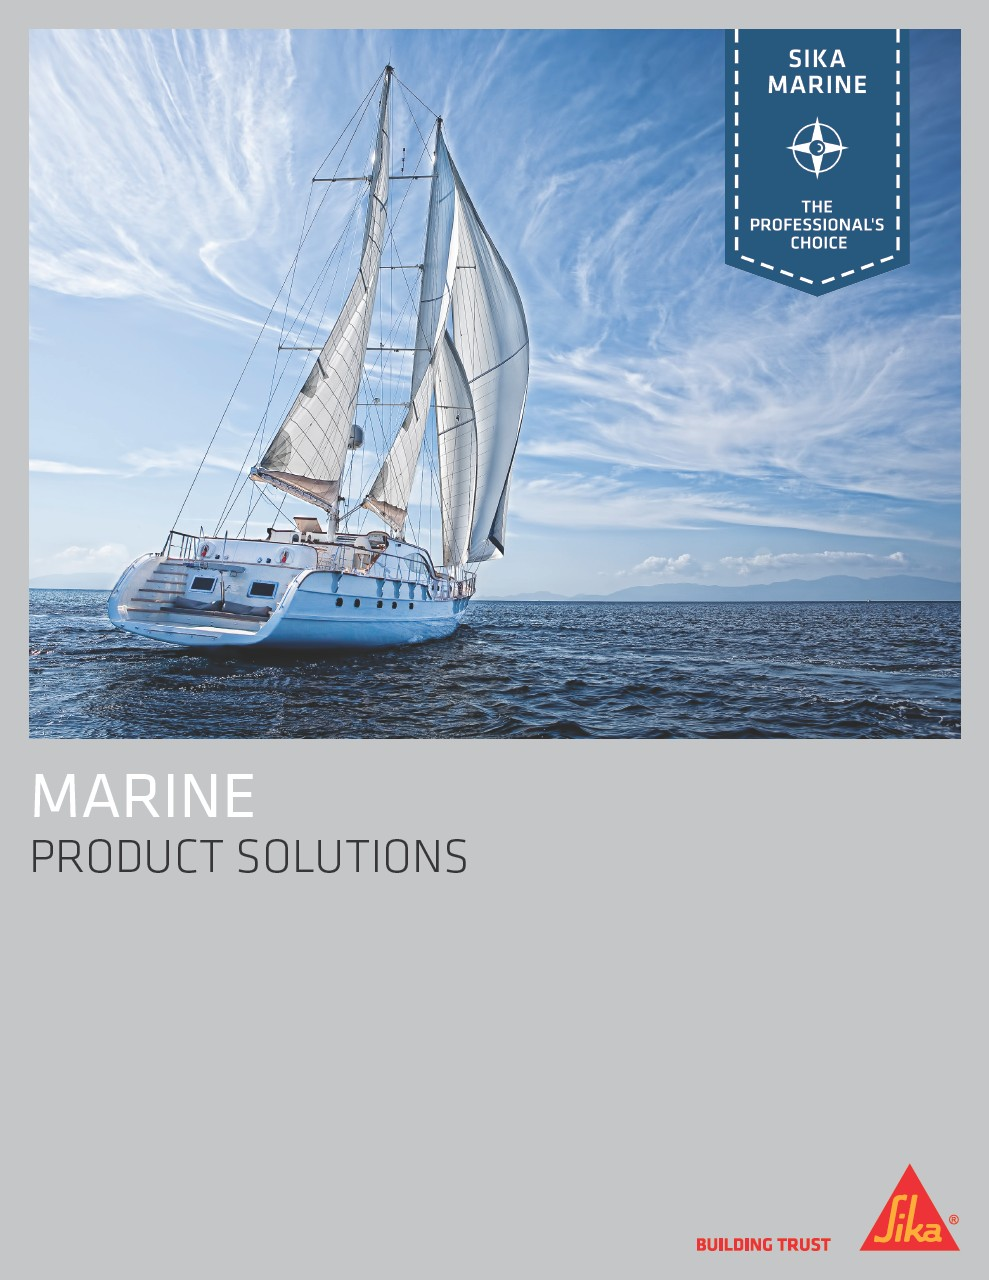 Marine Product Solutions